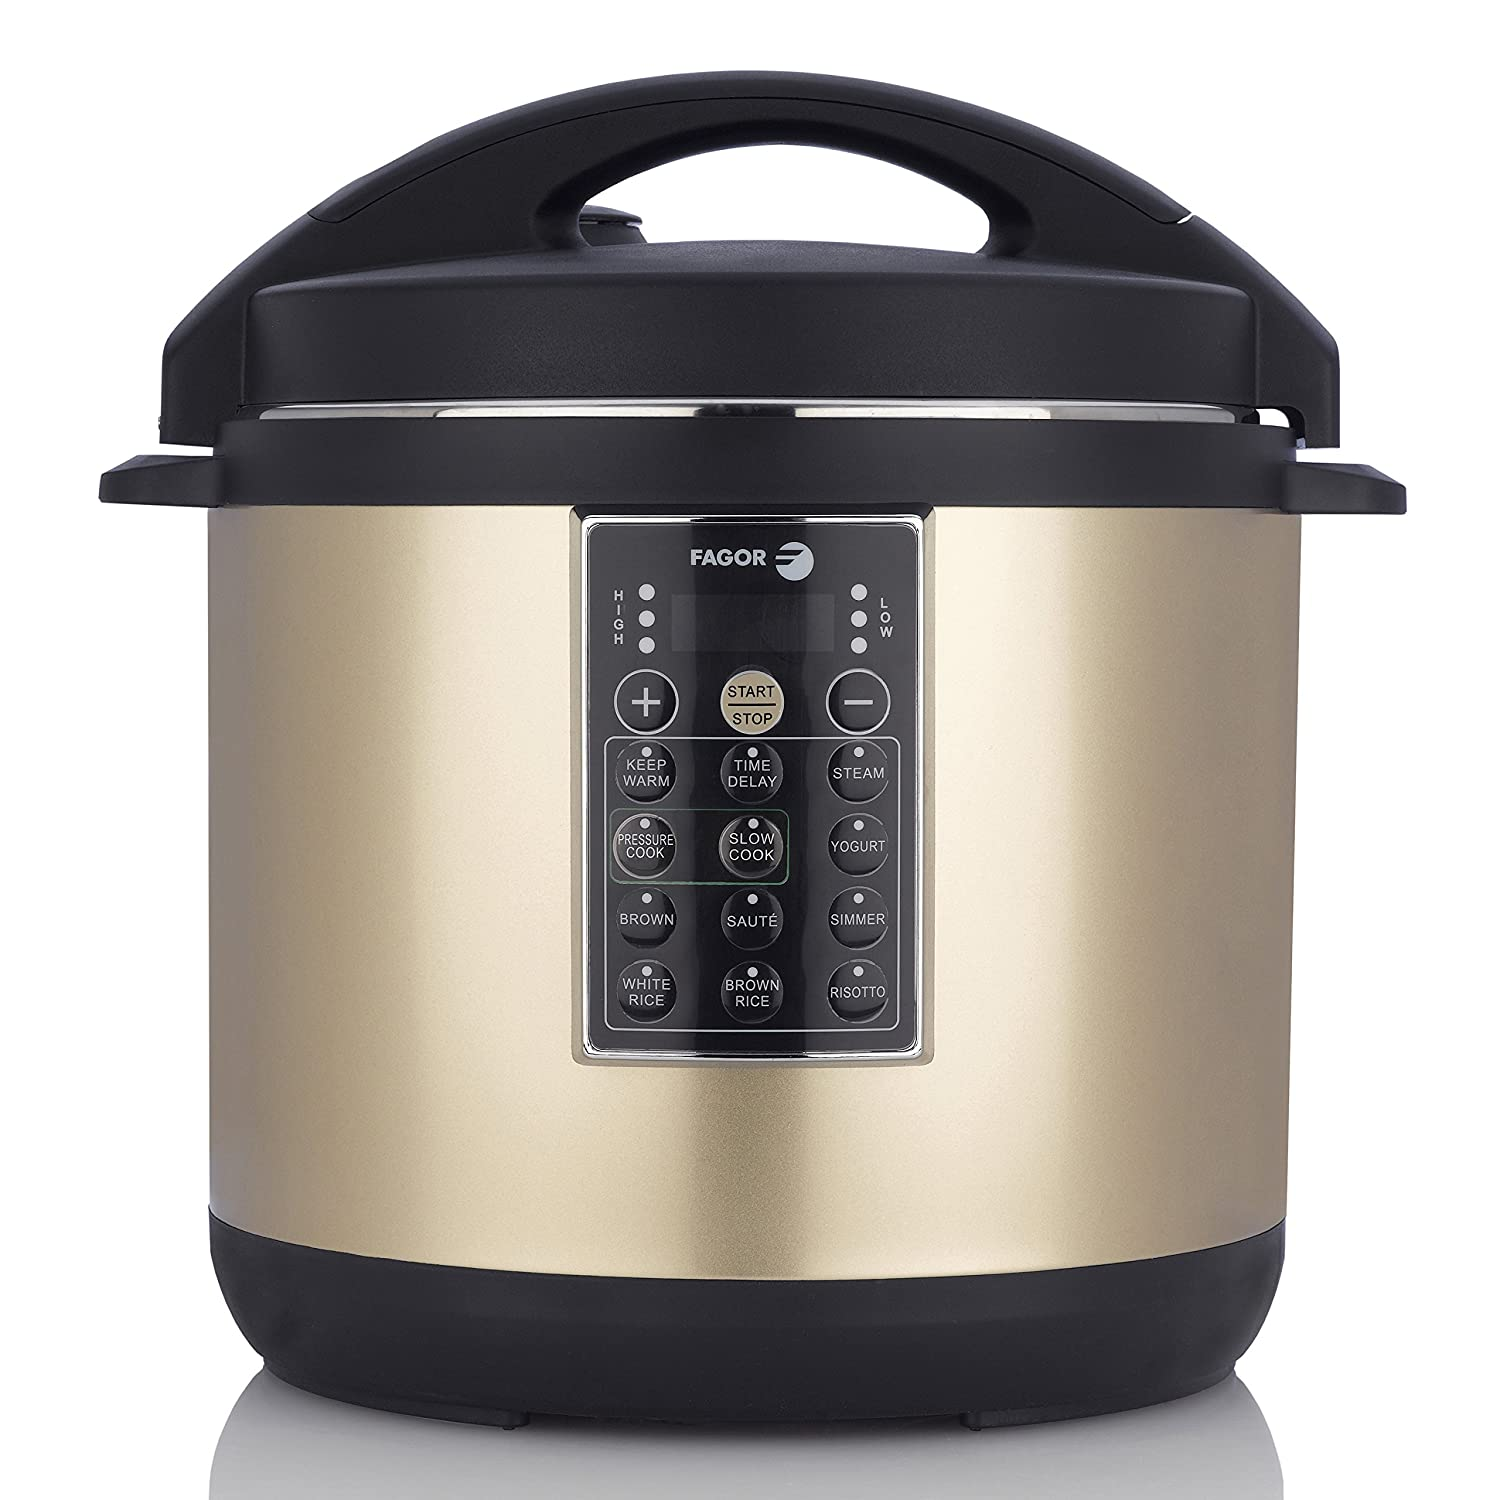 Buy a Fagor Lux Multicooker today!*